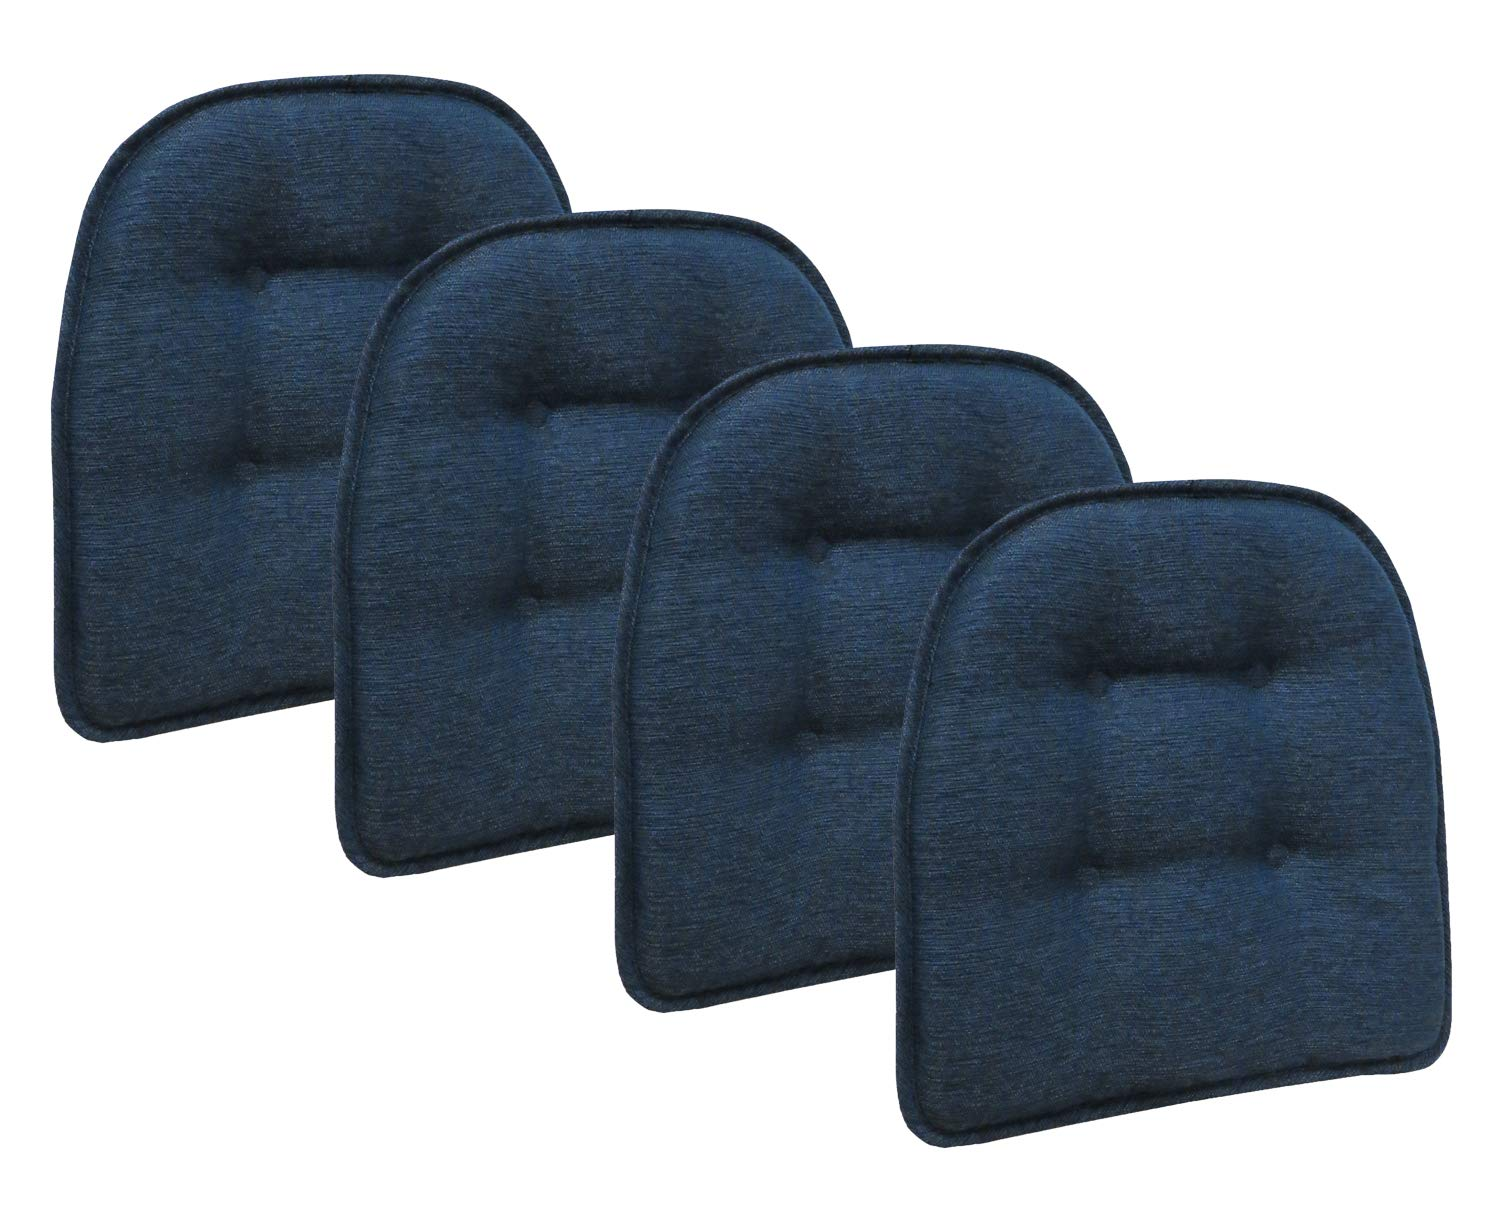 Klear Vu Omega Gripper Tufted Furniture Safe Non-Slip Dining Chair Cushion, 4 Pack, Indigo